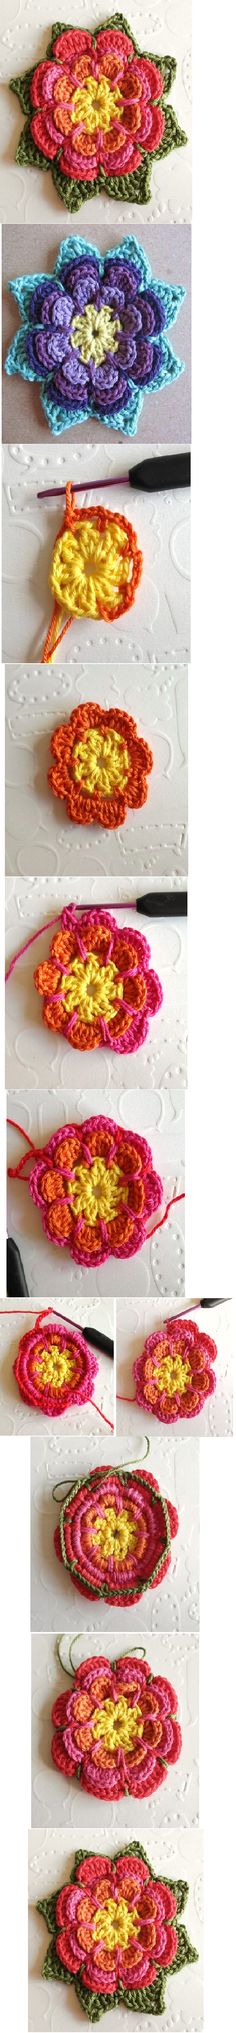 flower crochet motif - quick tutorial!